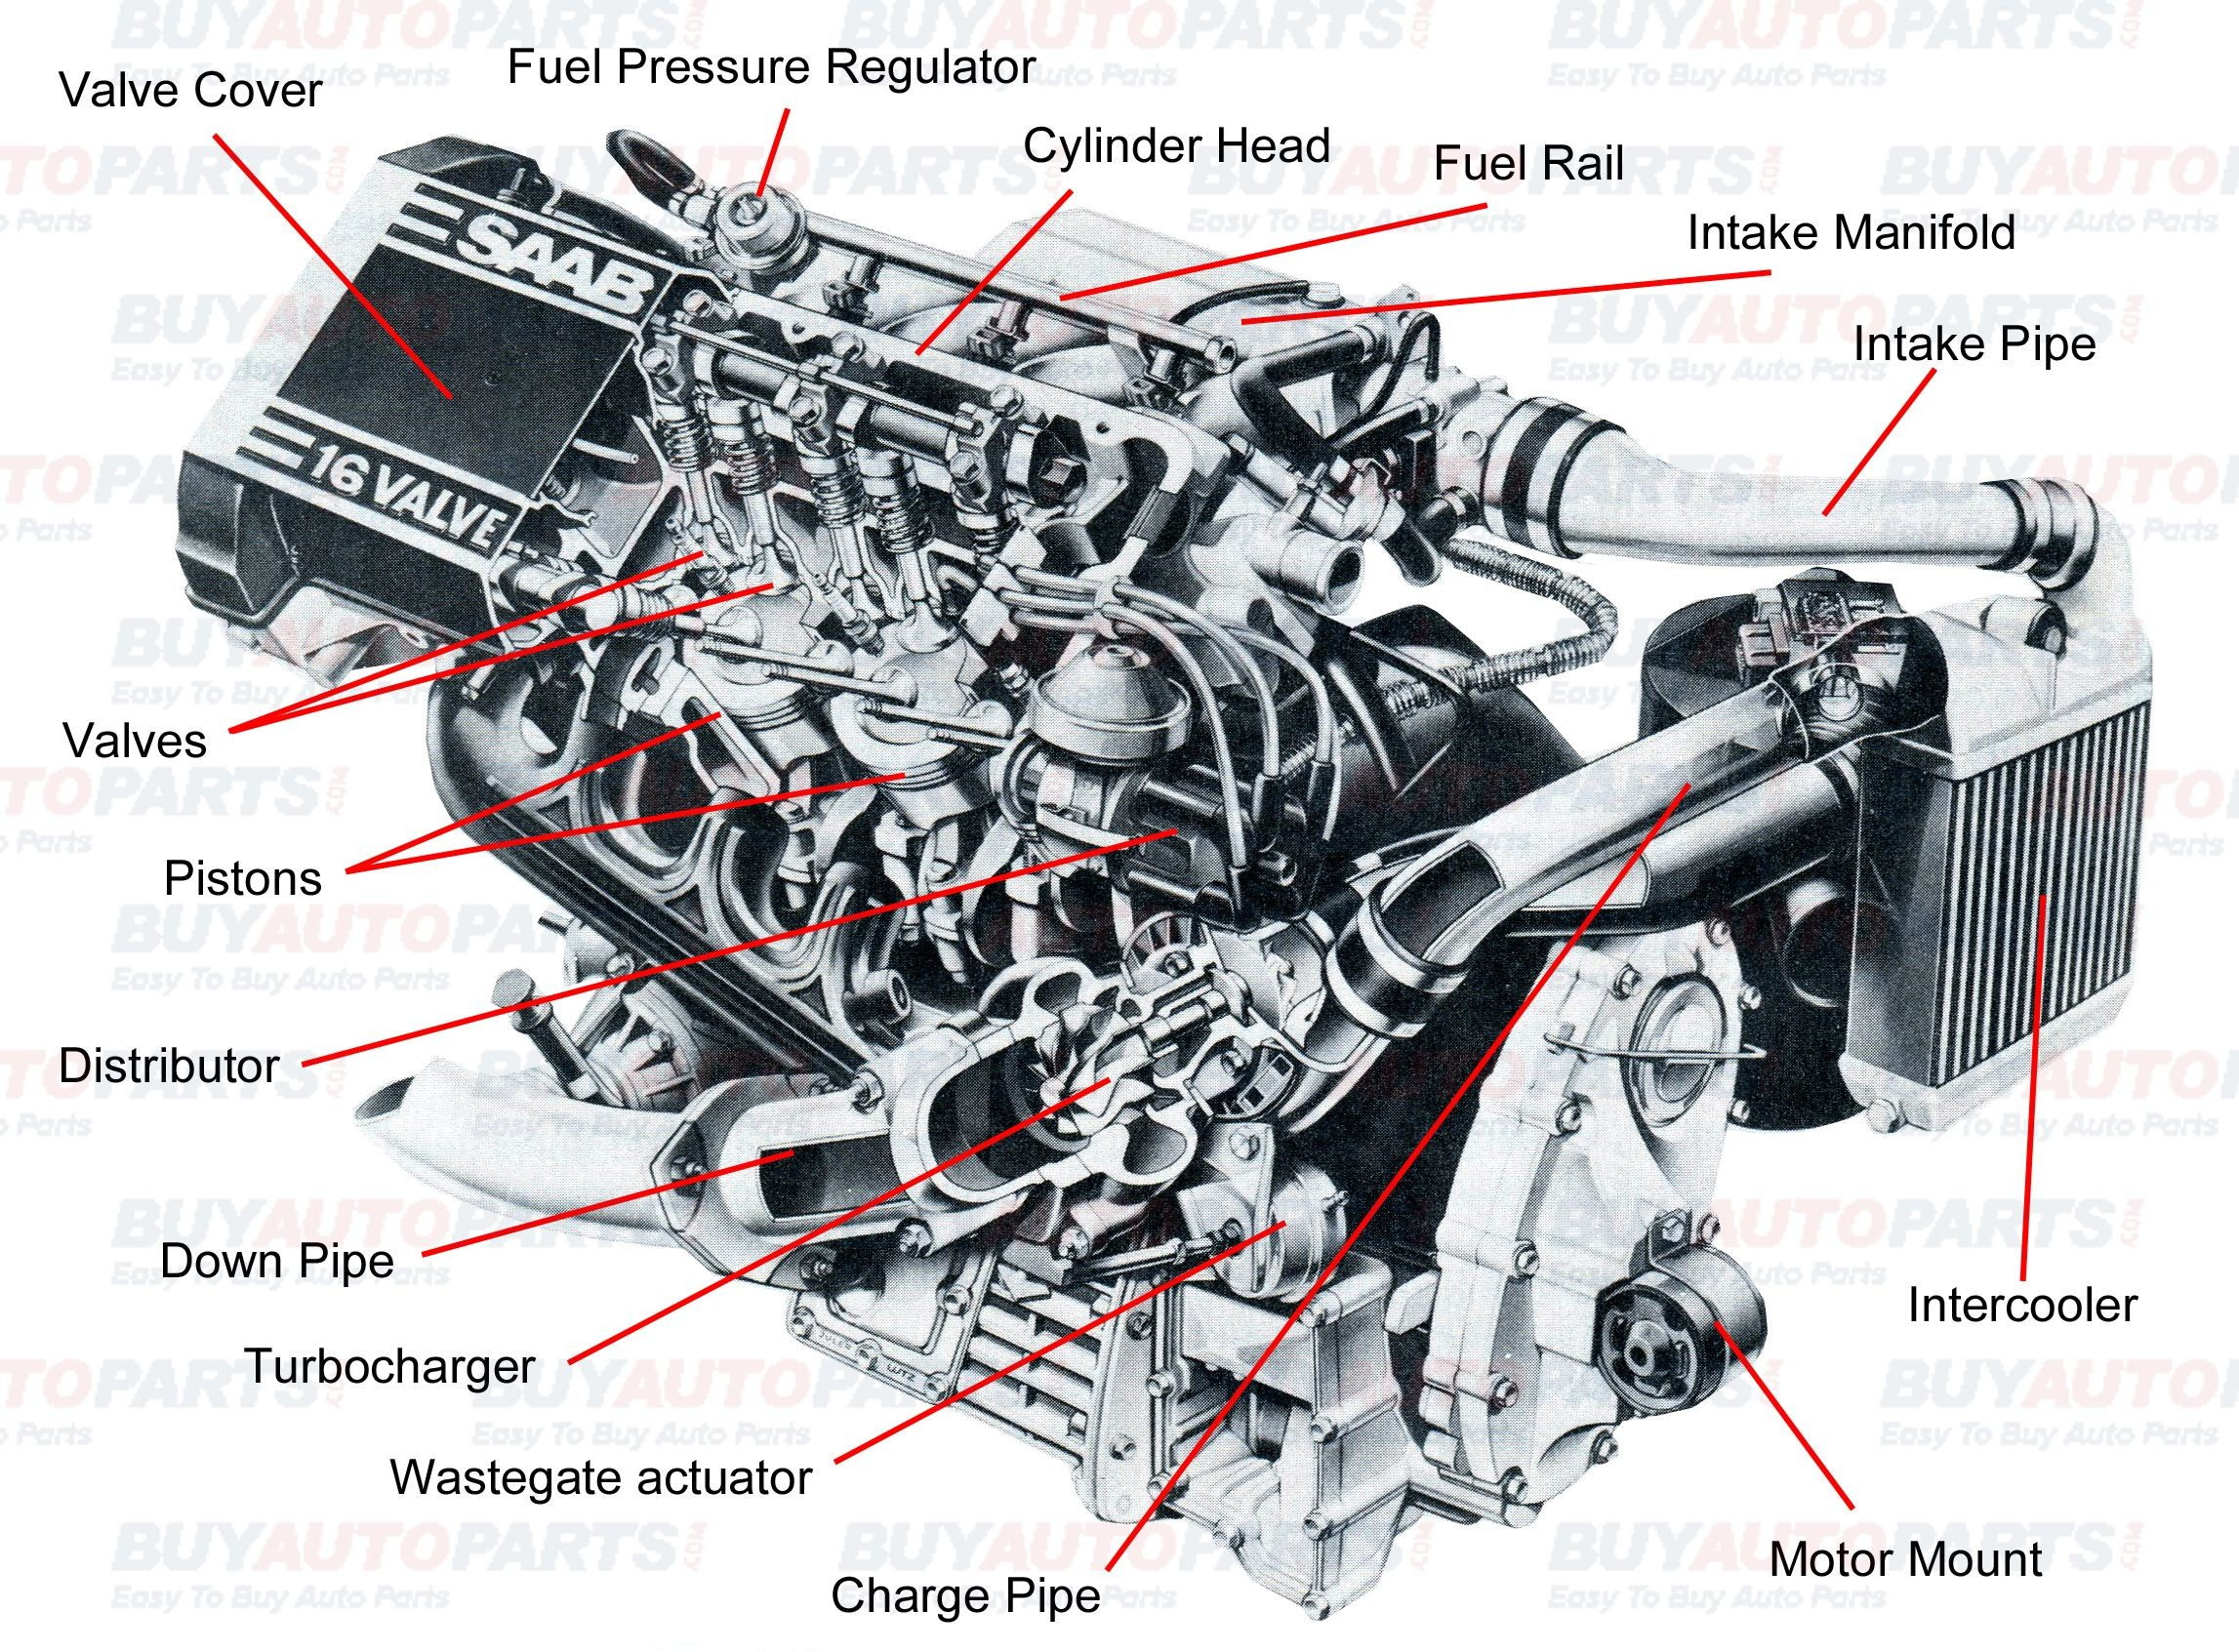 Car Brake Parts Diagram All Internal Bustion Engines Have the Same Basic Ponents the Of Car Brake Parts Diagram